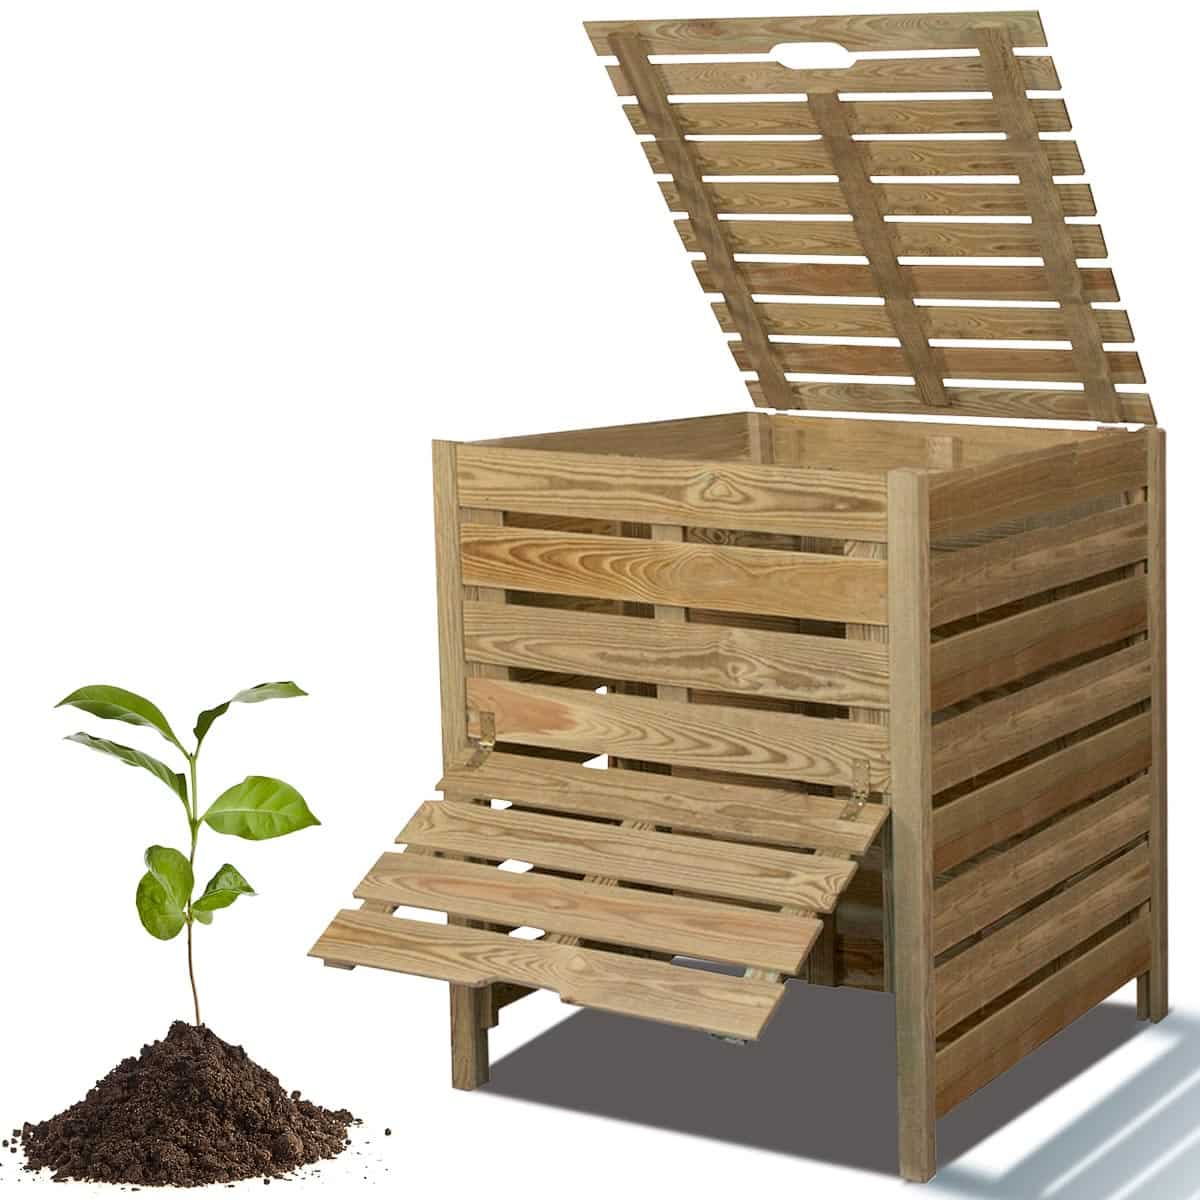 jardins anim s jardin bio recycler et composter composteur de jardin composteur bois 800l en pin. Black Bedroom Furniture Sets. Home Design Ideas